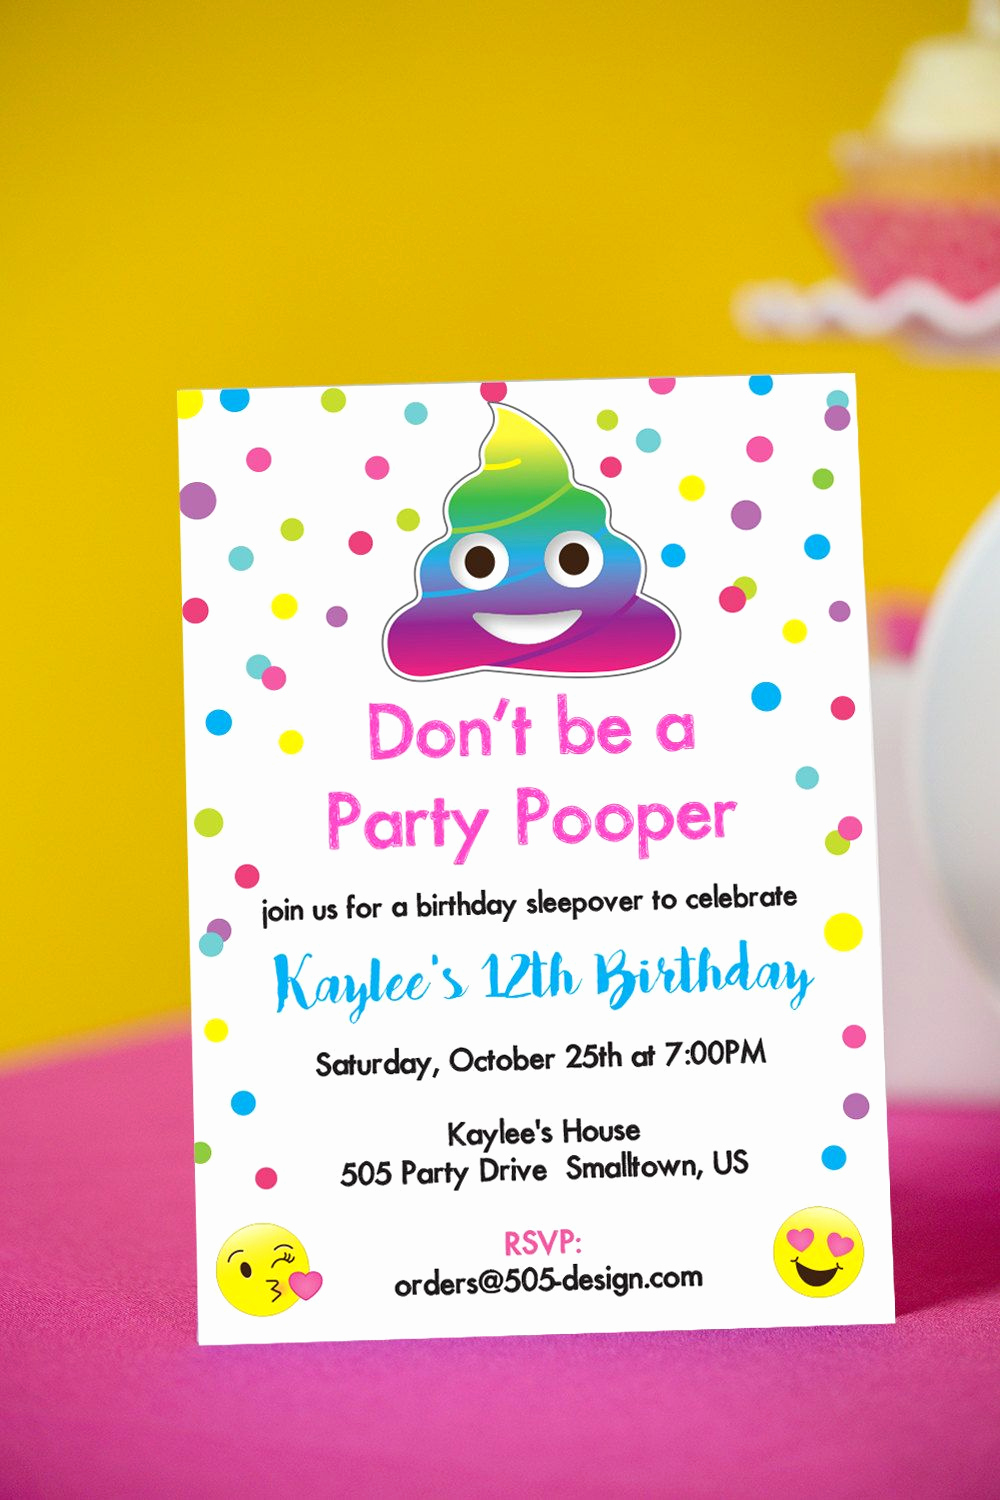 Emoji Invitation Template Free Beautiful Free Printable Emoji Party Invitations Emoji Invitation